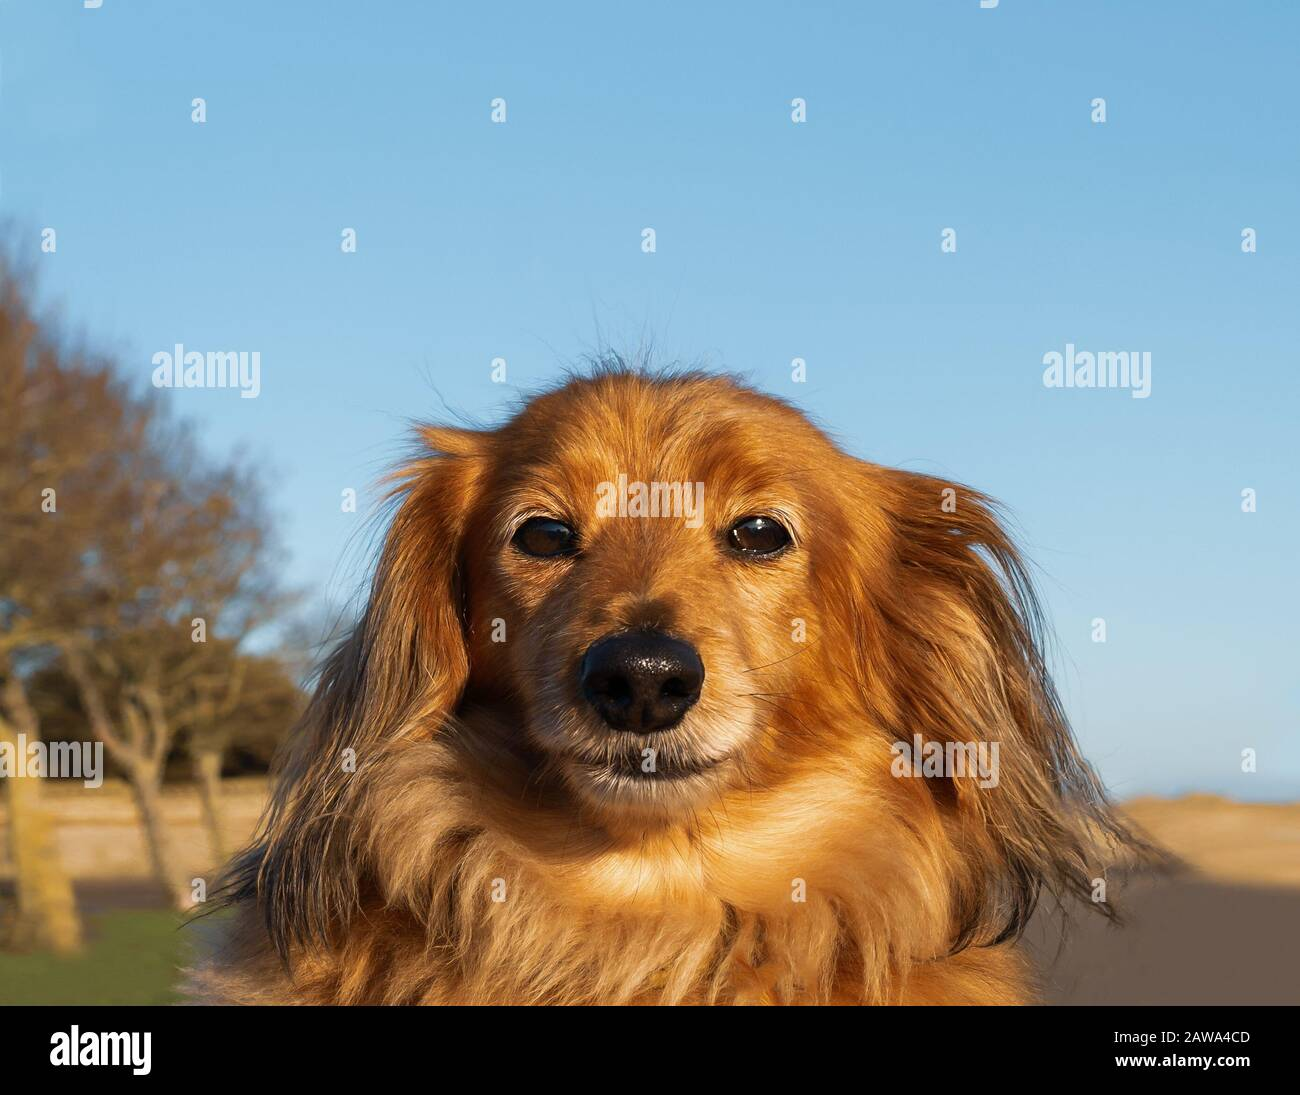 Portrait of a cute long haired miniature dachshund outside against